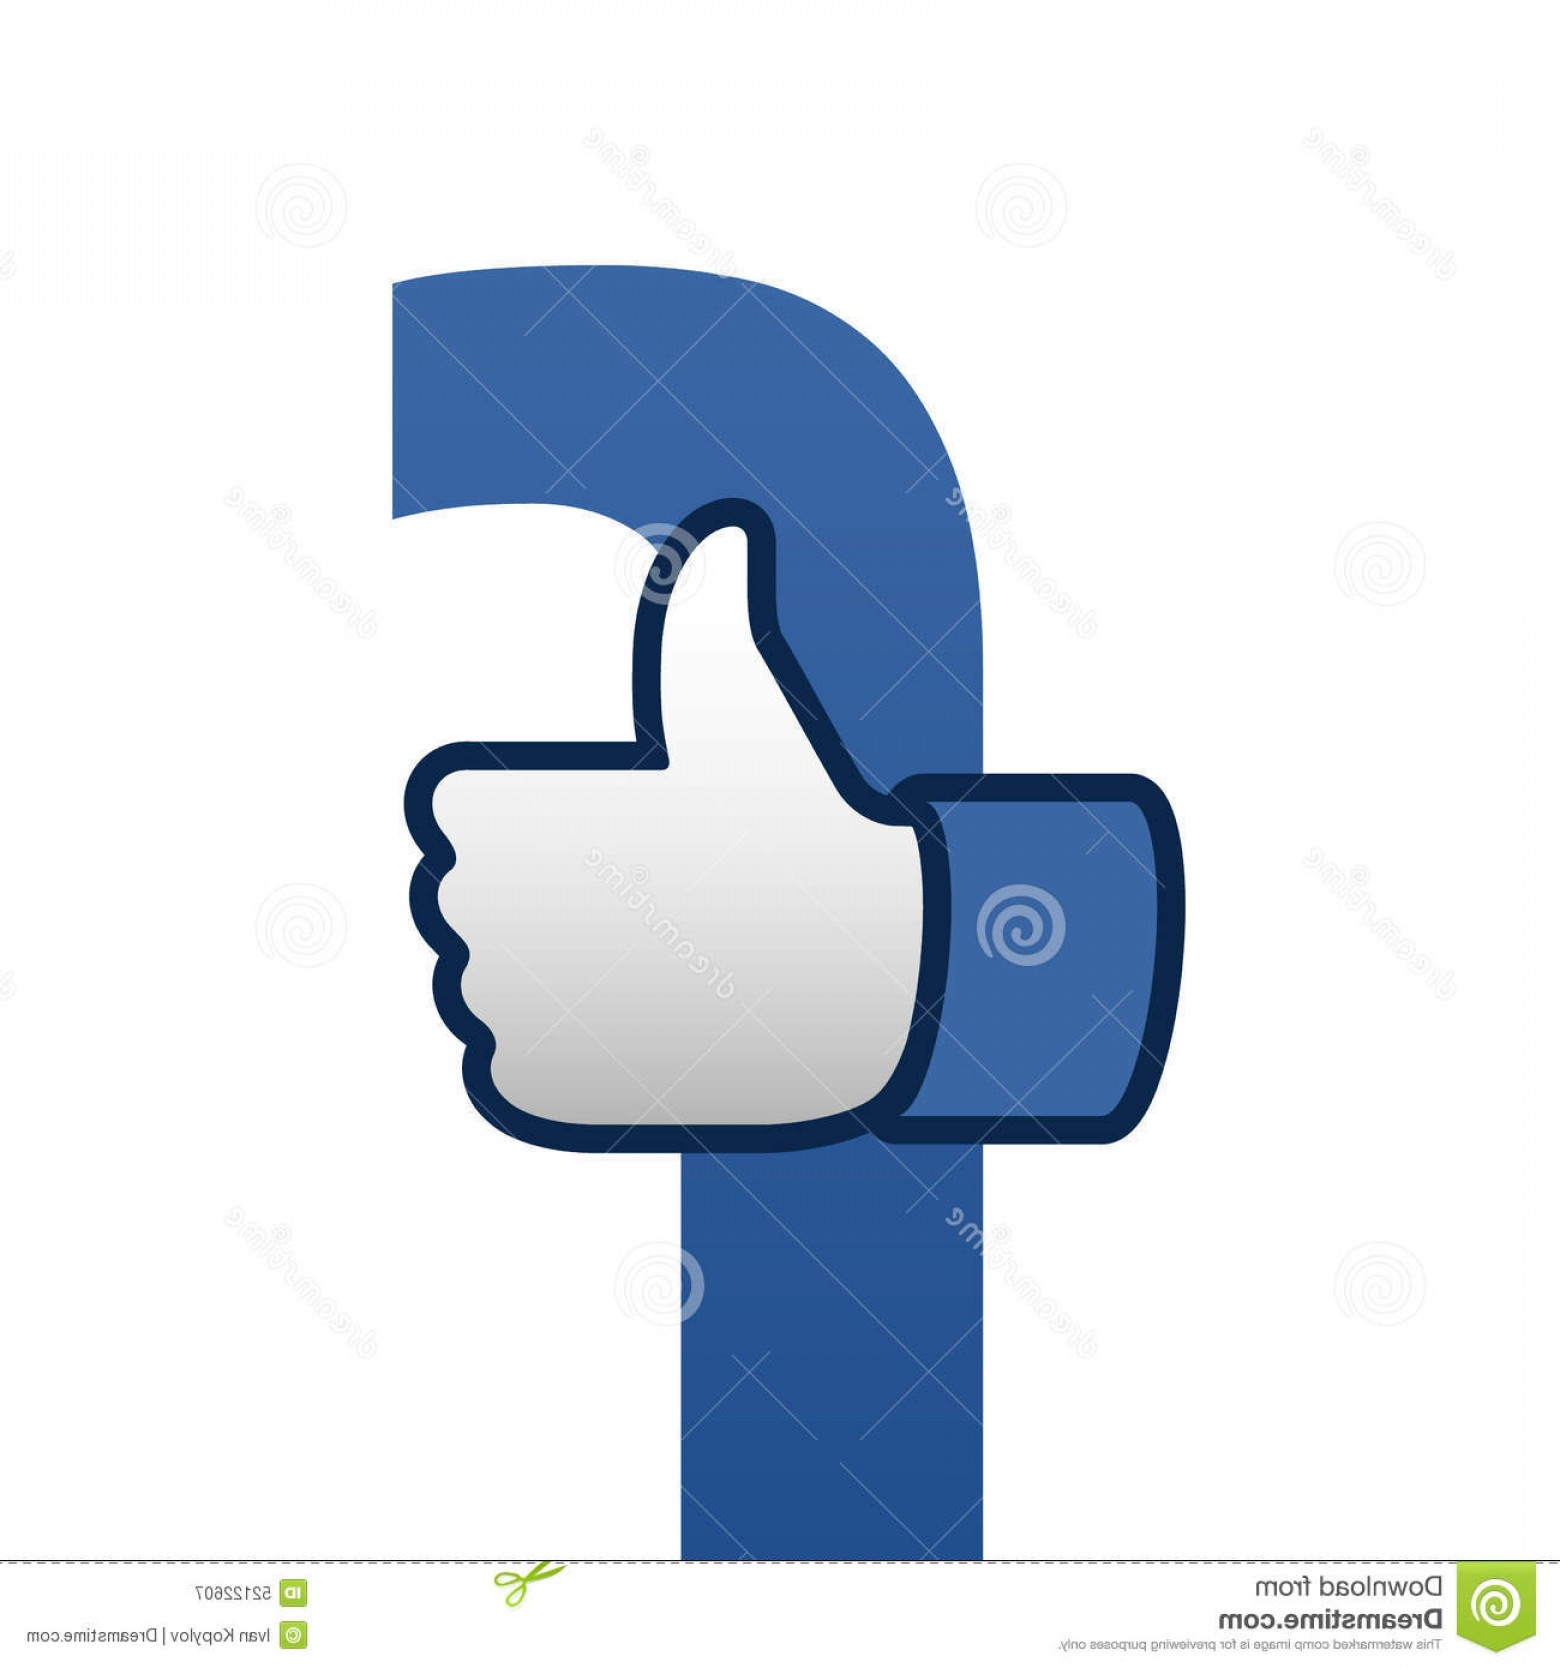 Finger Facebook Vector: Facebook Like Thumbs Up Symbol Icon Illustration